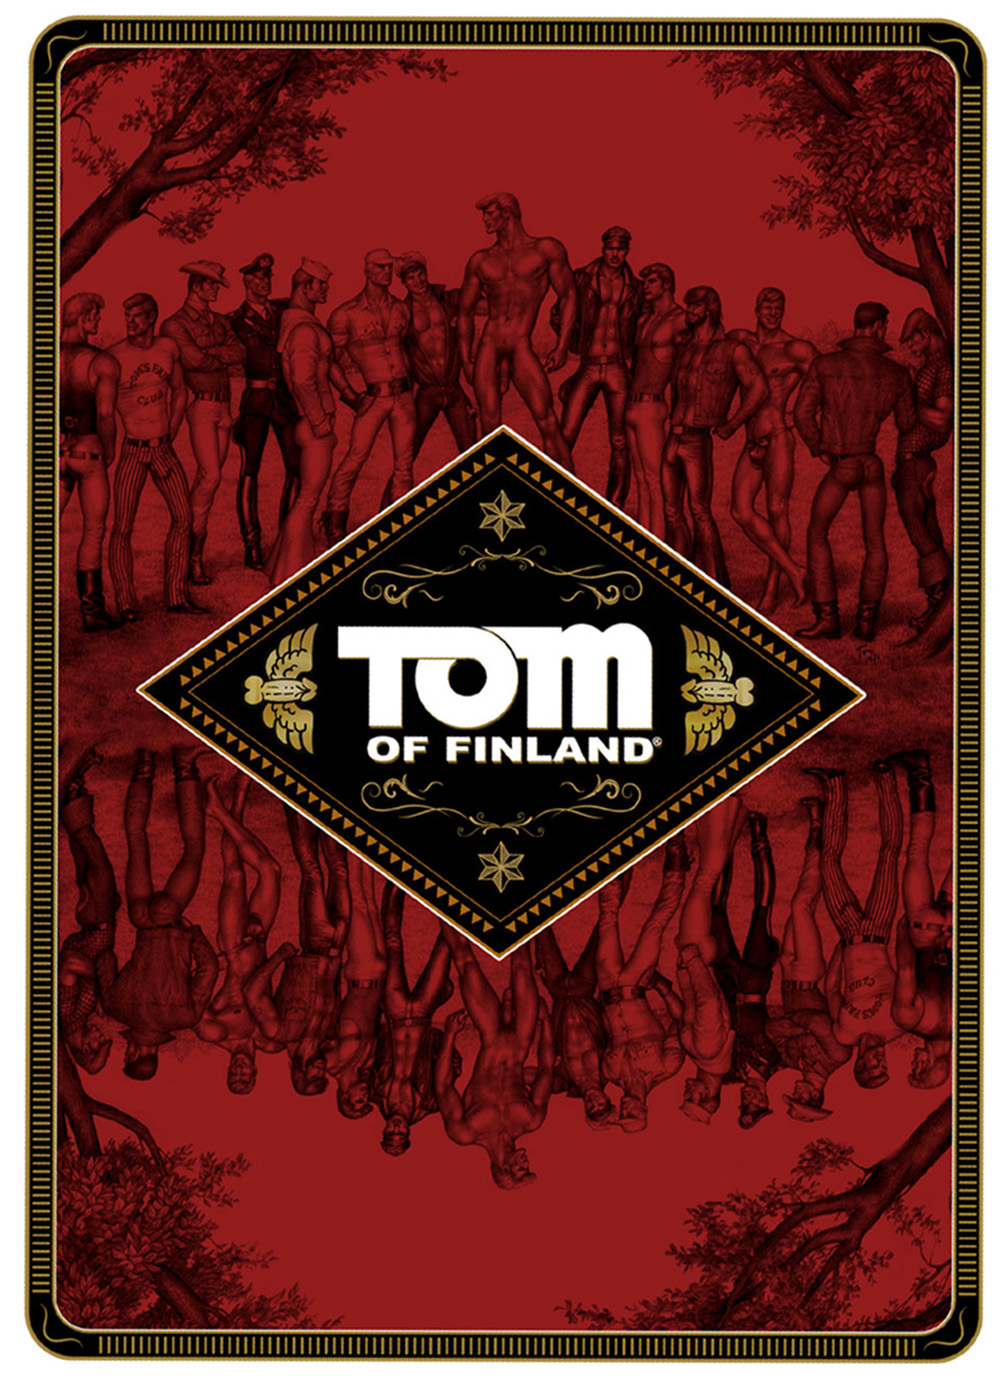 TOM OF FINLAND POKER CARDS.jpg